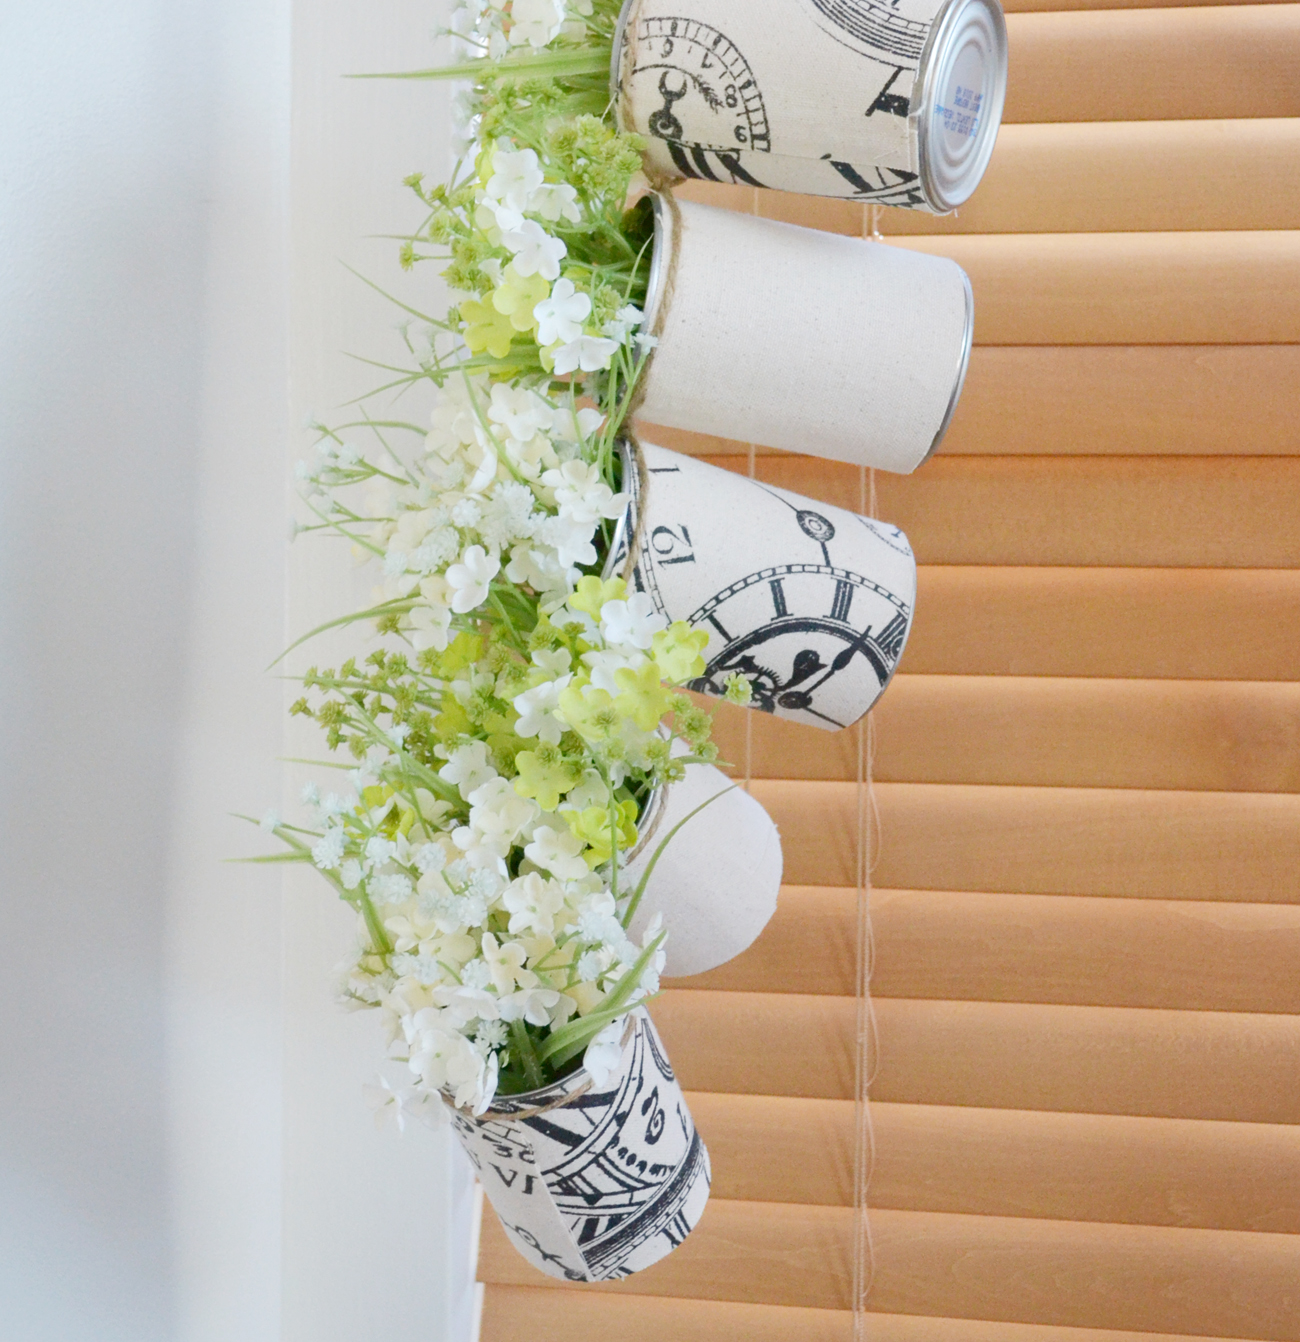 Hanging cans closer to window